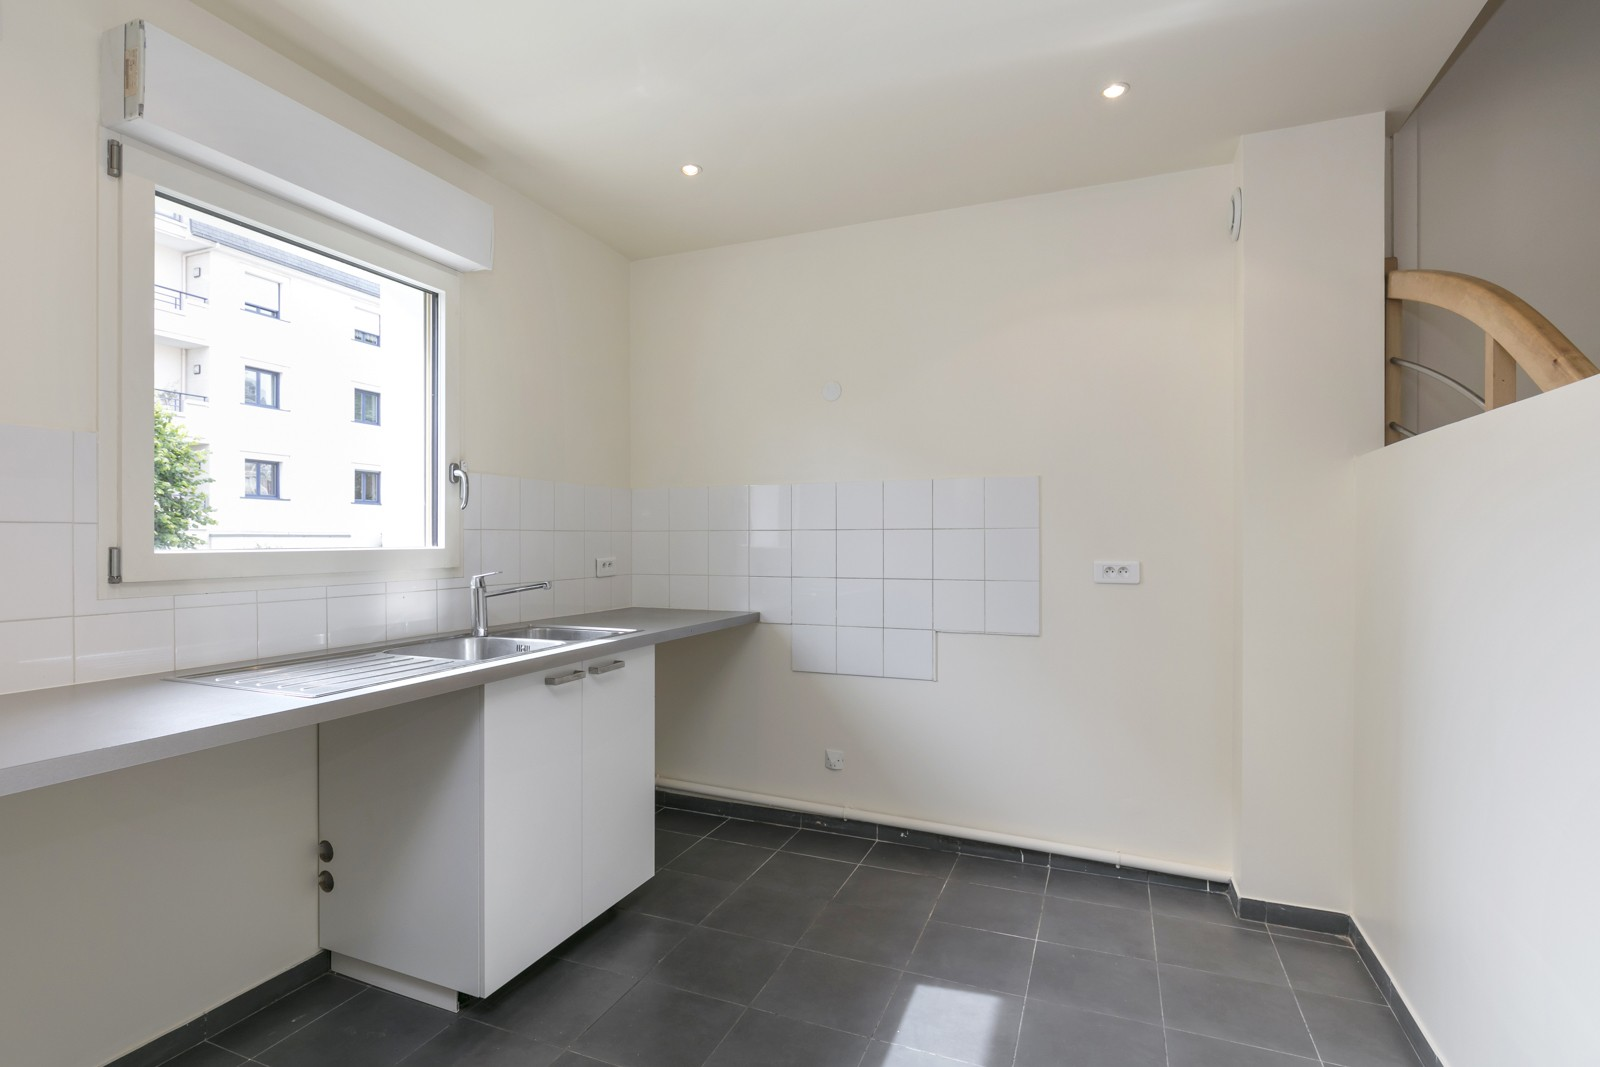 LA GARENNE COLOMBES FAMILY TOWN HOUSE